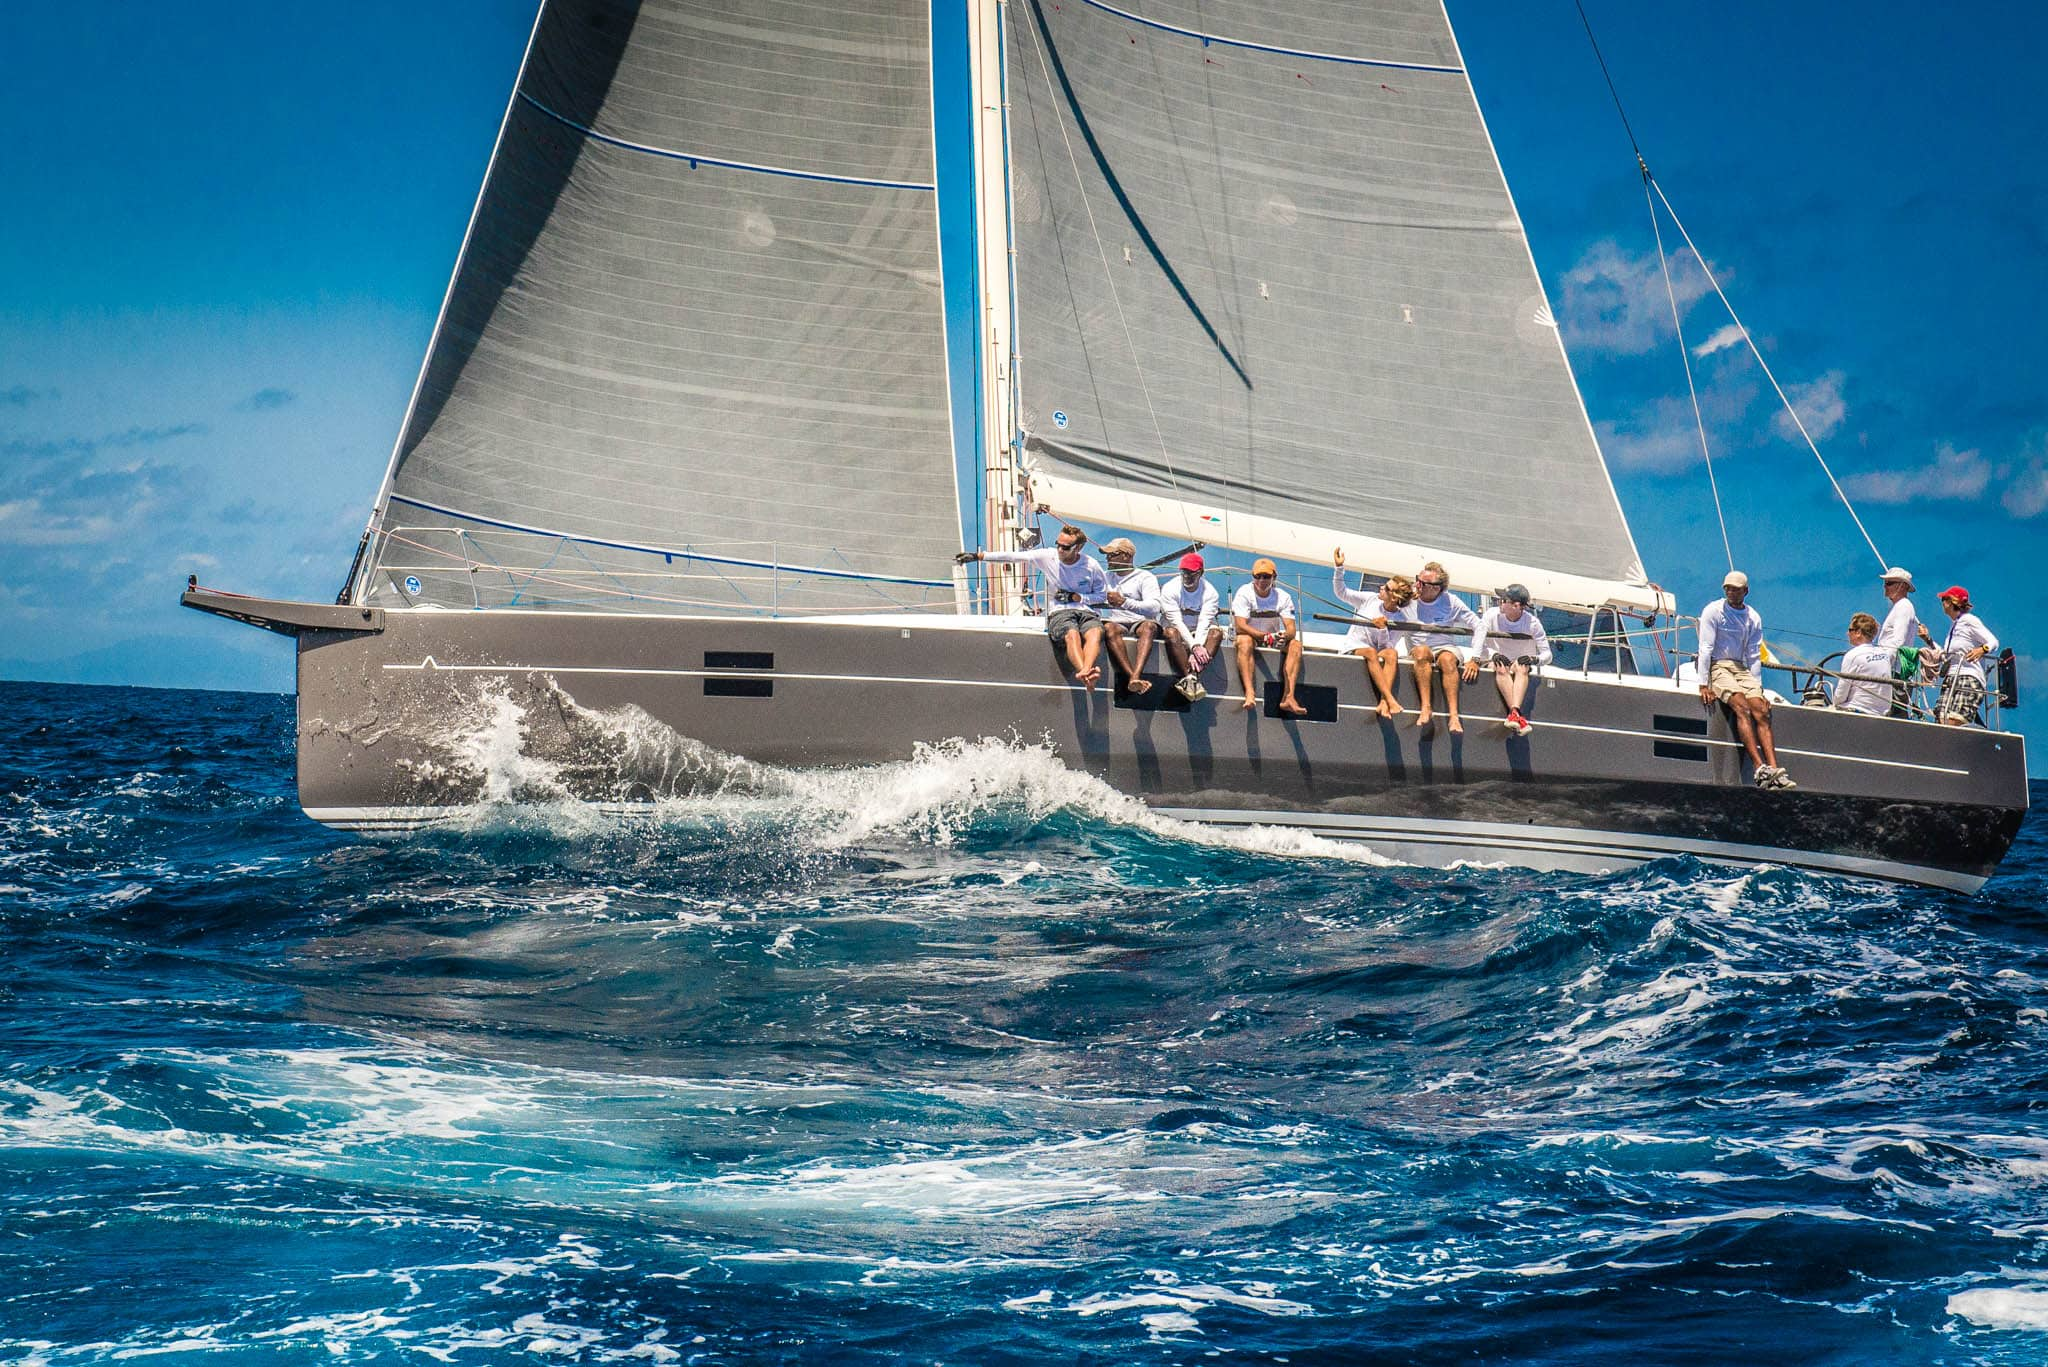 Antigua Sailing Week by Patrick Bennett